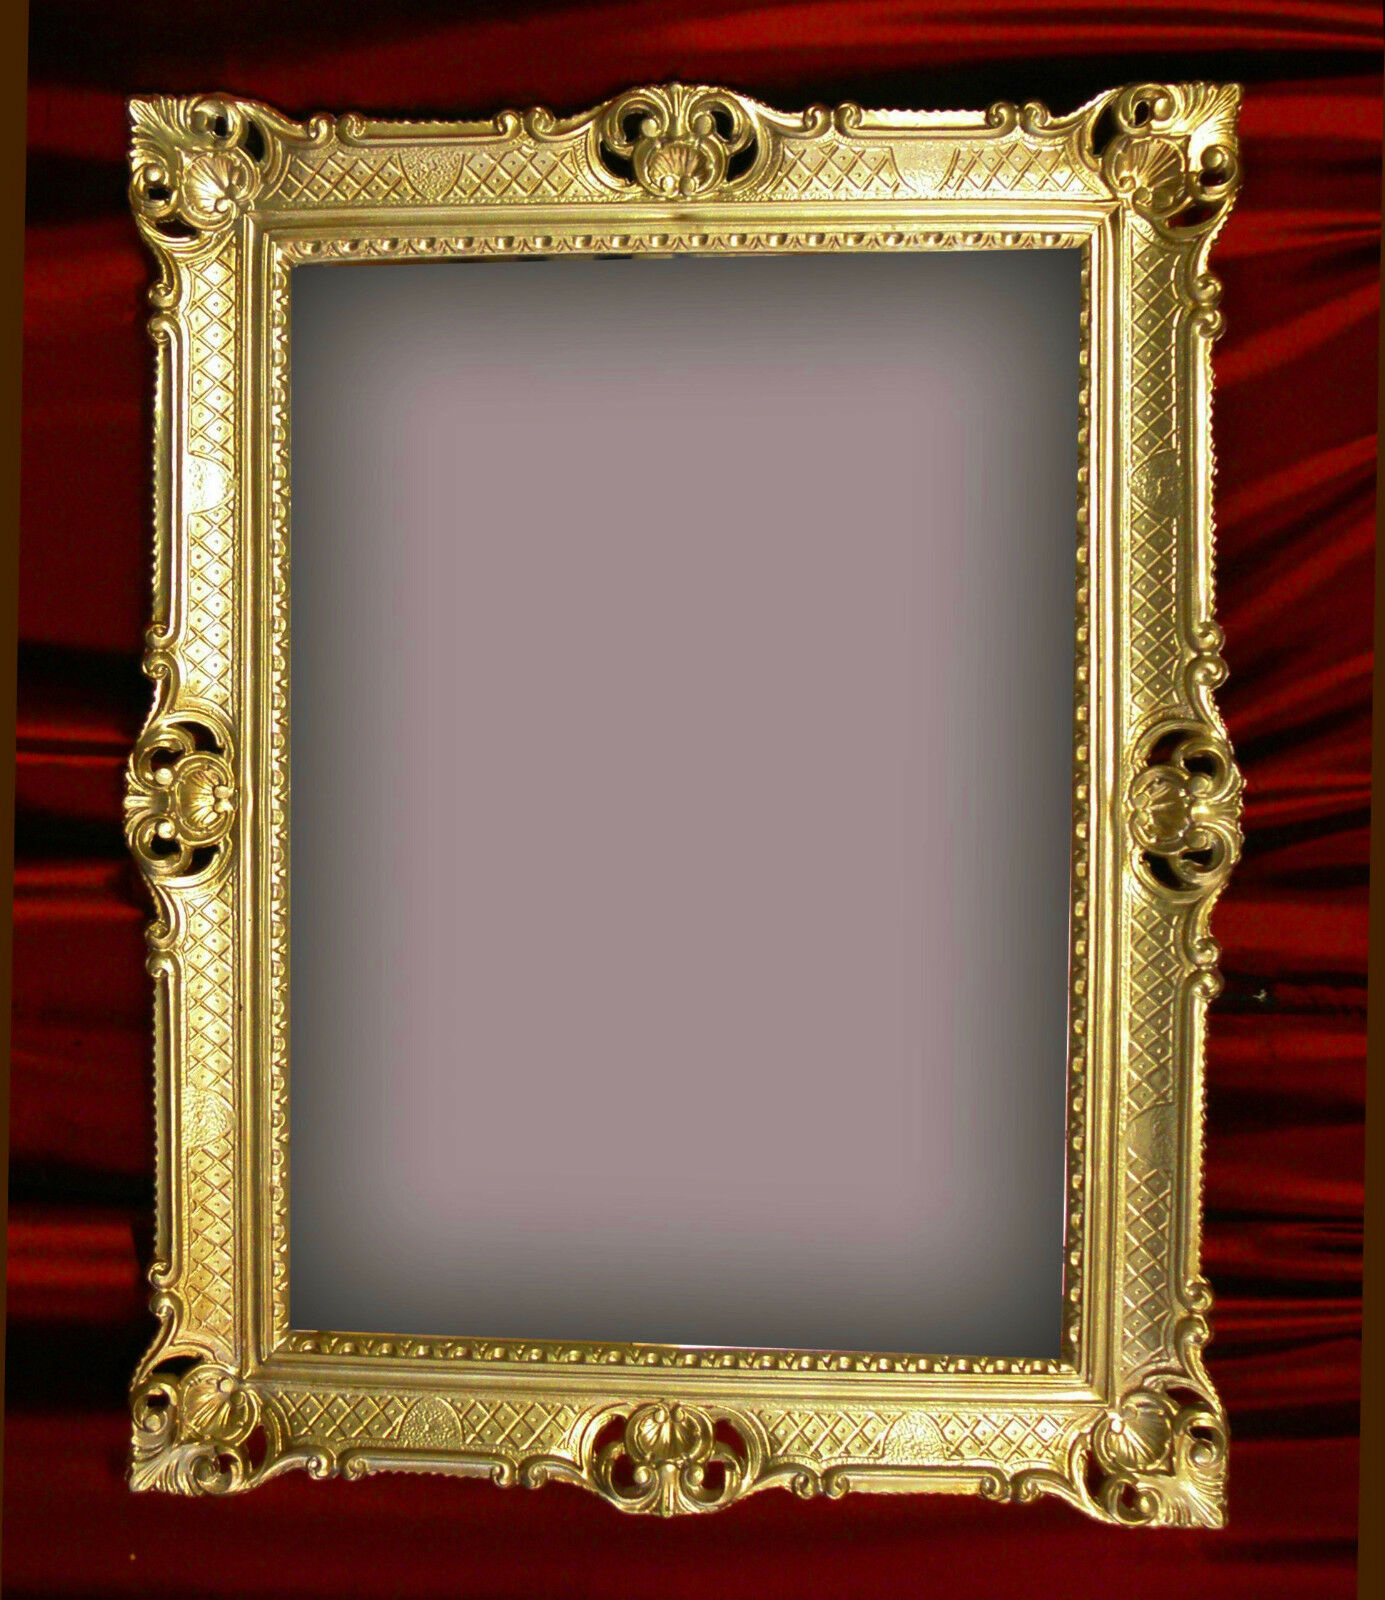 picture frame 90x70 gold antique baroque frame rococo. Black Bedroom Furniture Sets. Home Design Ideas